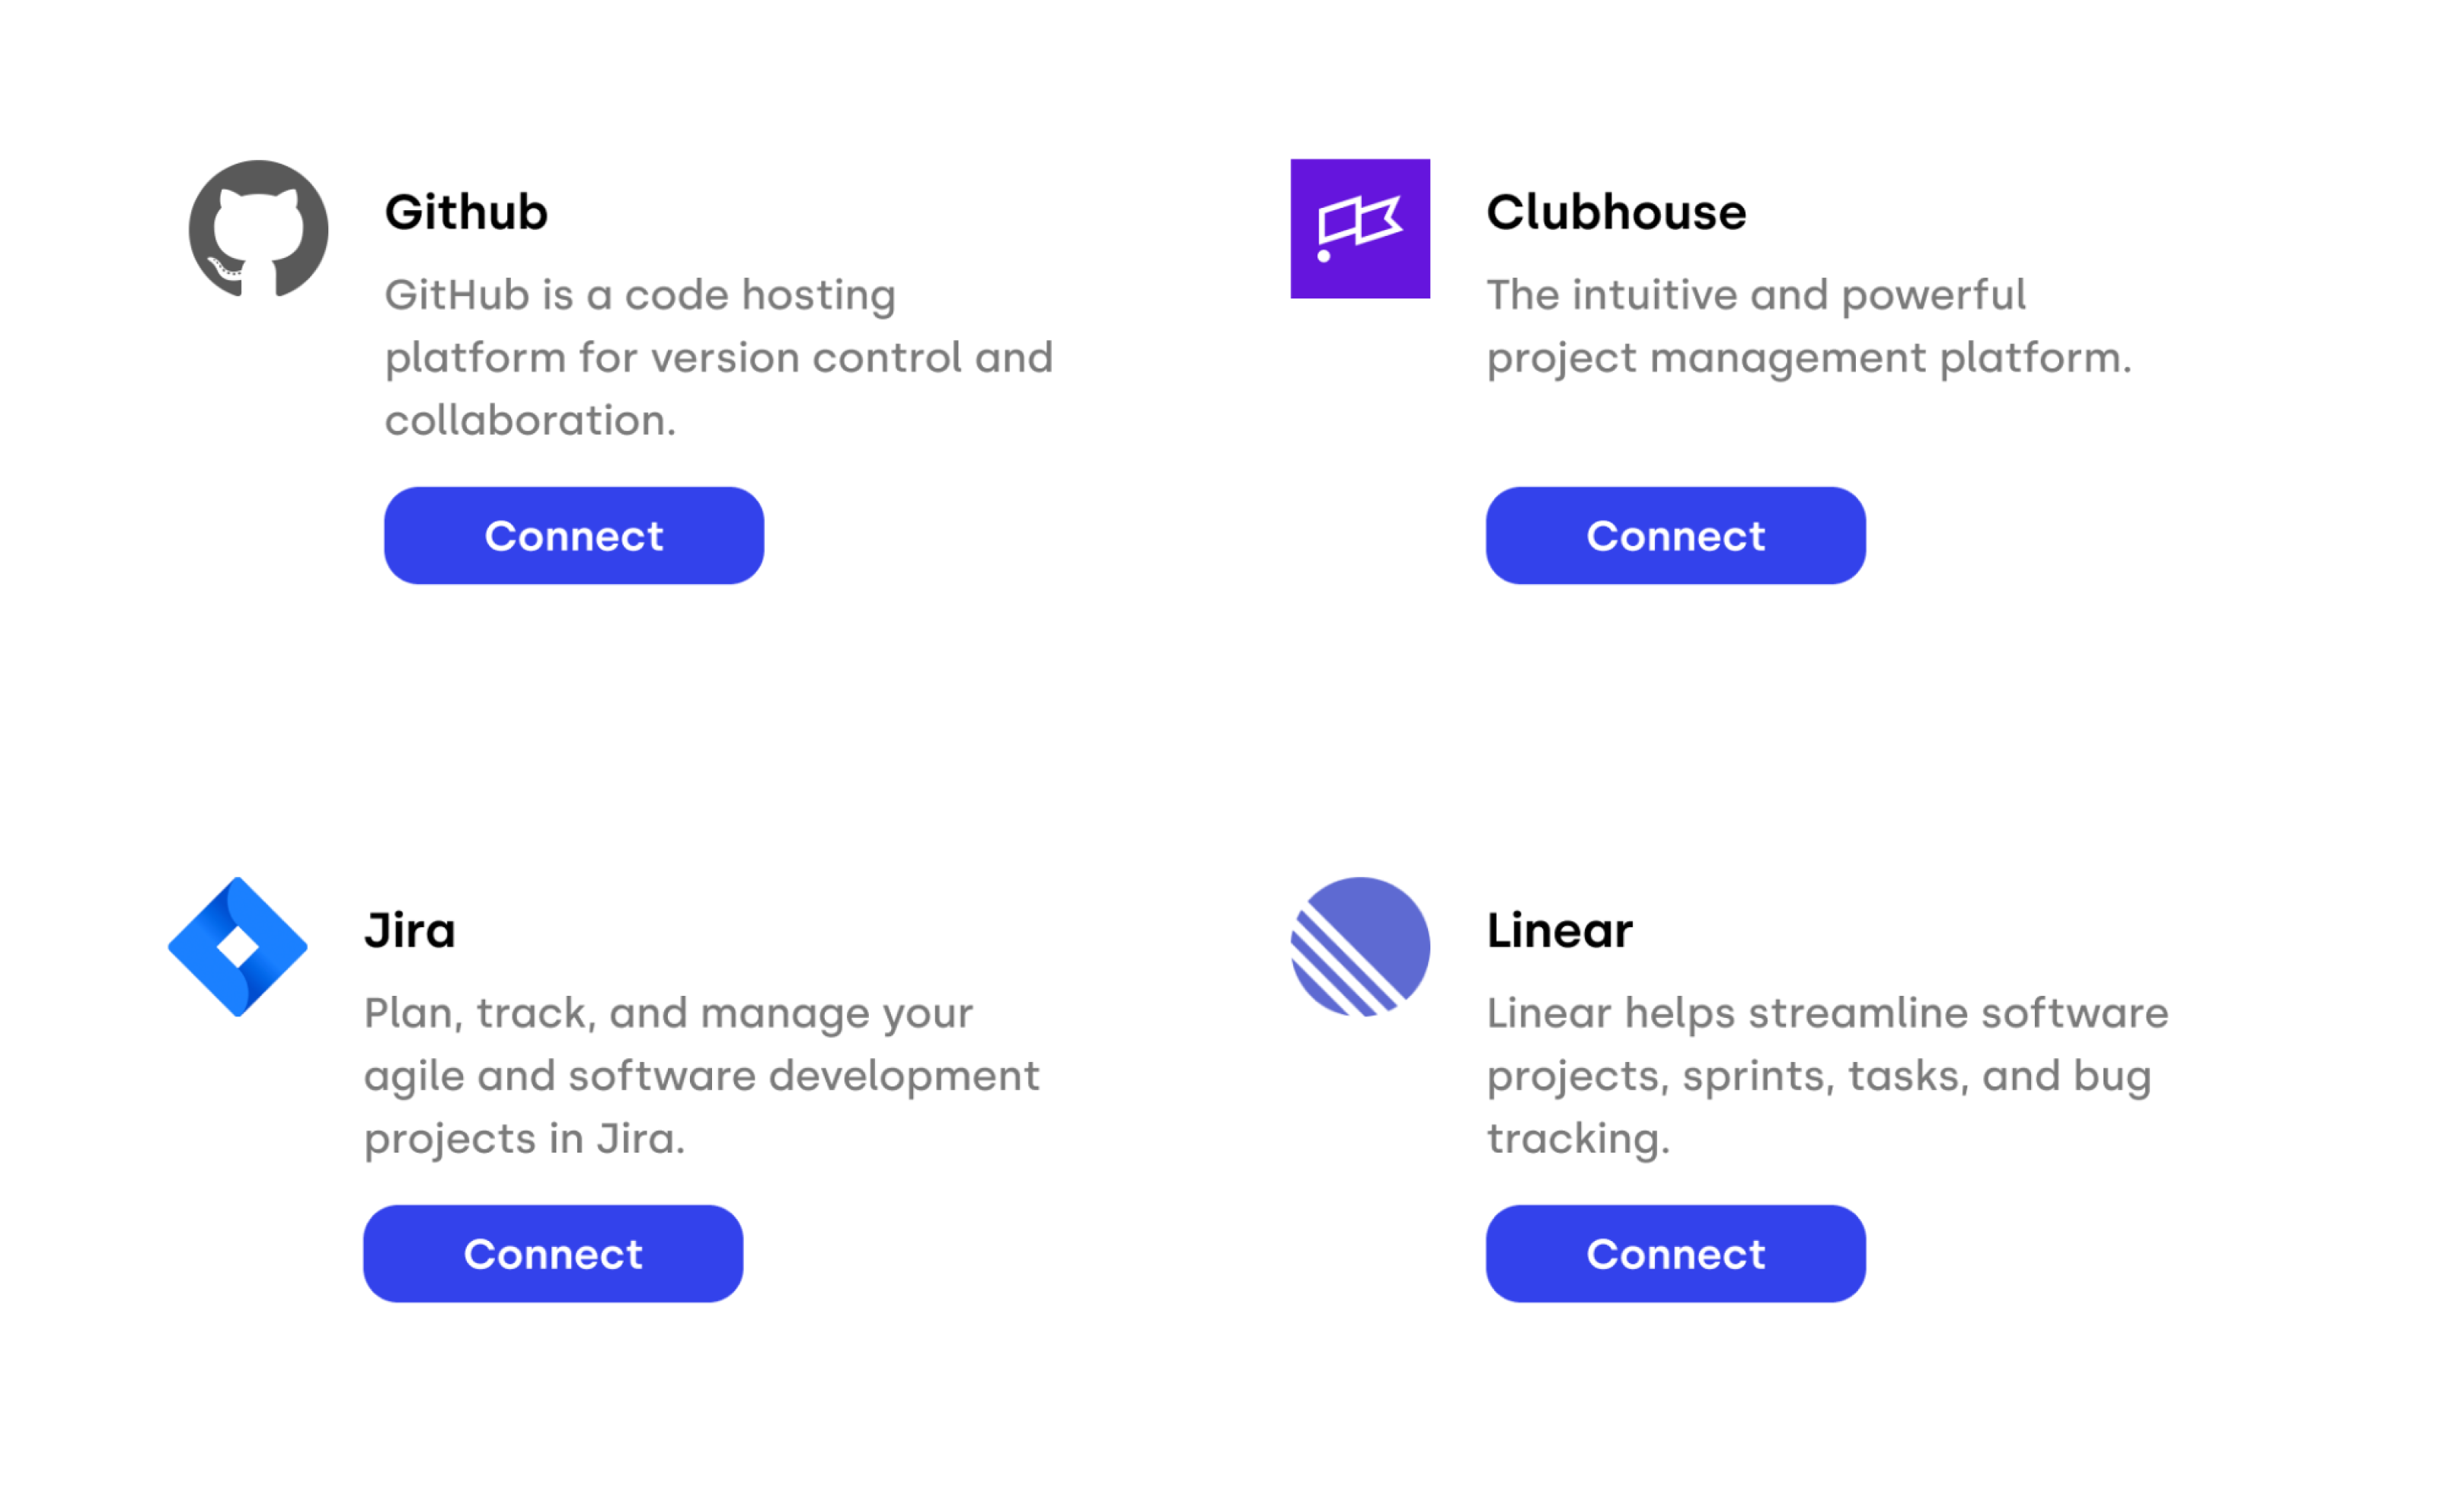 Screenshot of data source integrations, including GitHub, Jira, Linear, and Clubhouse